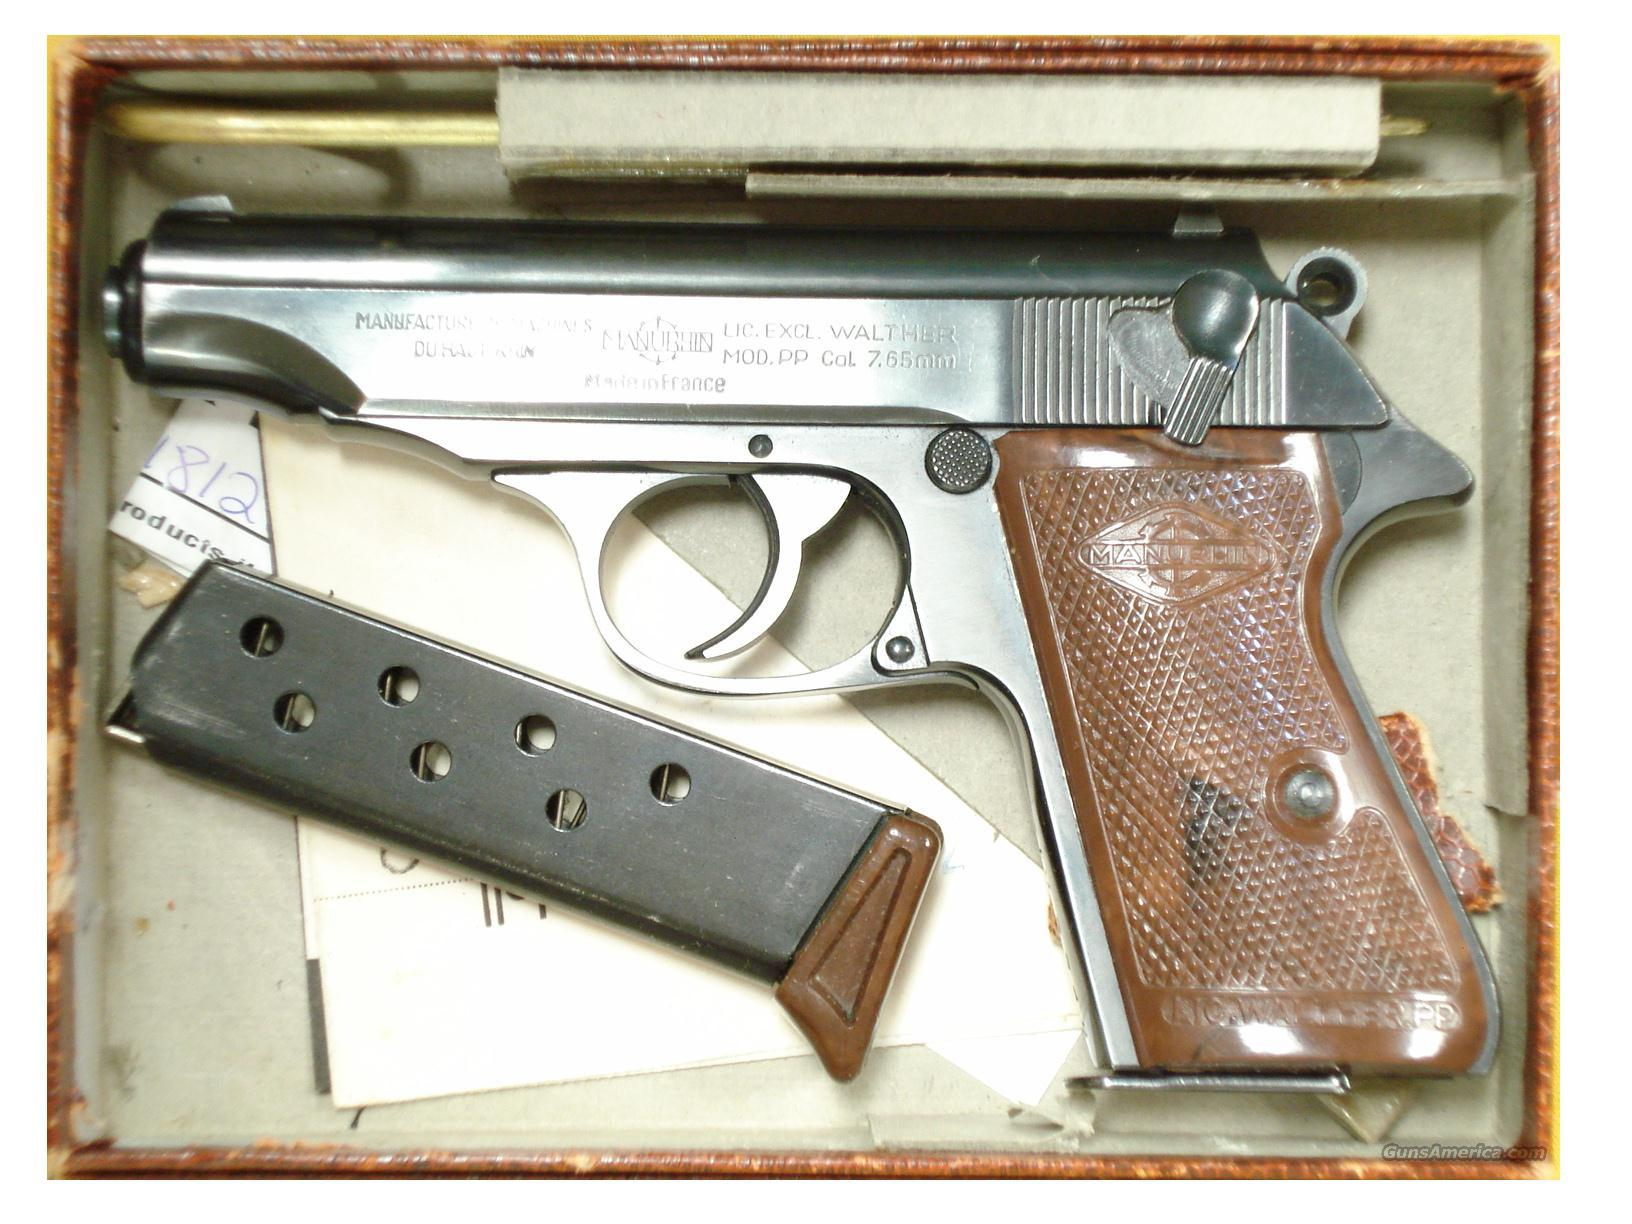 Manurhin PP Pistol Pics, Weapons Collection